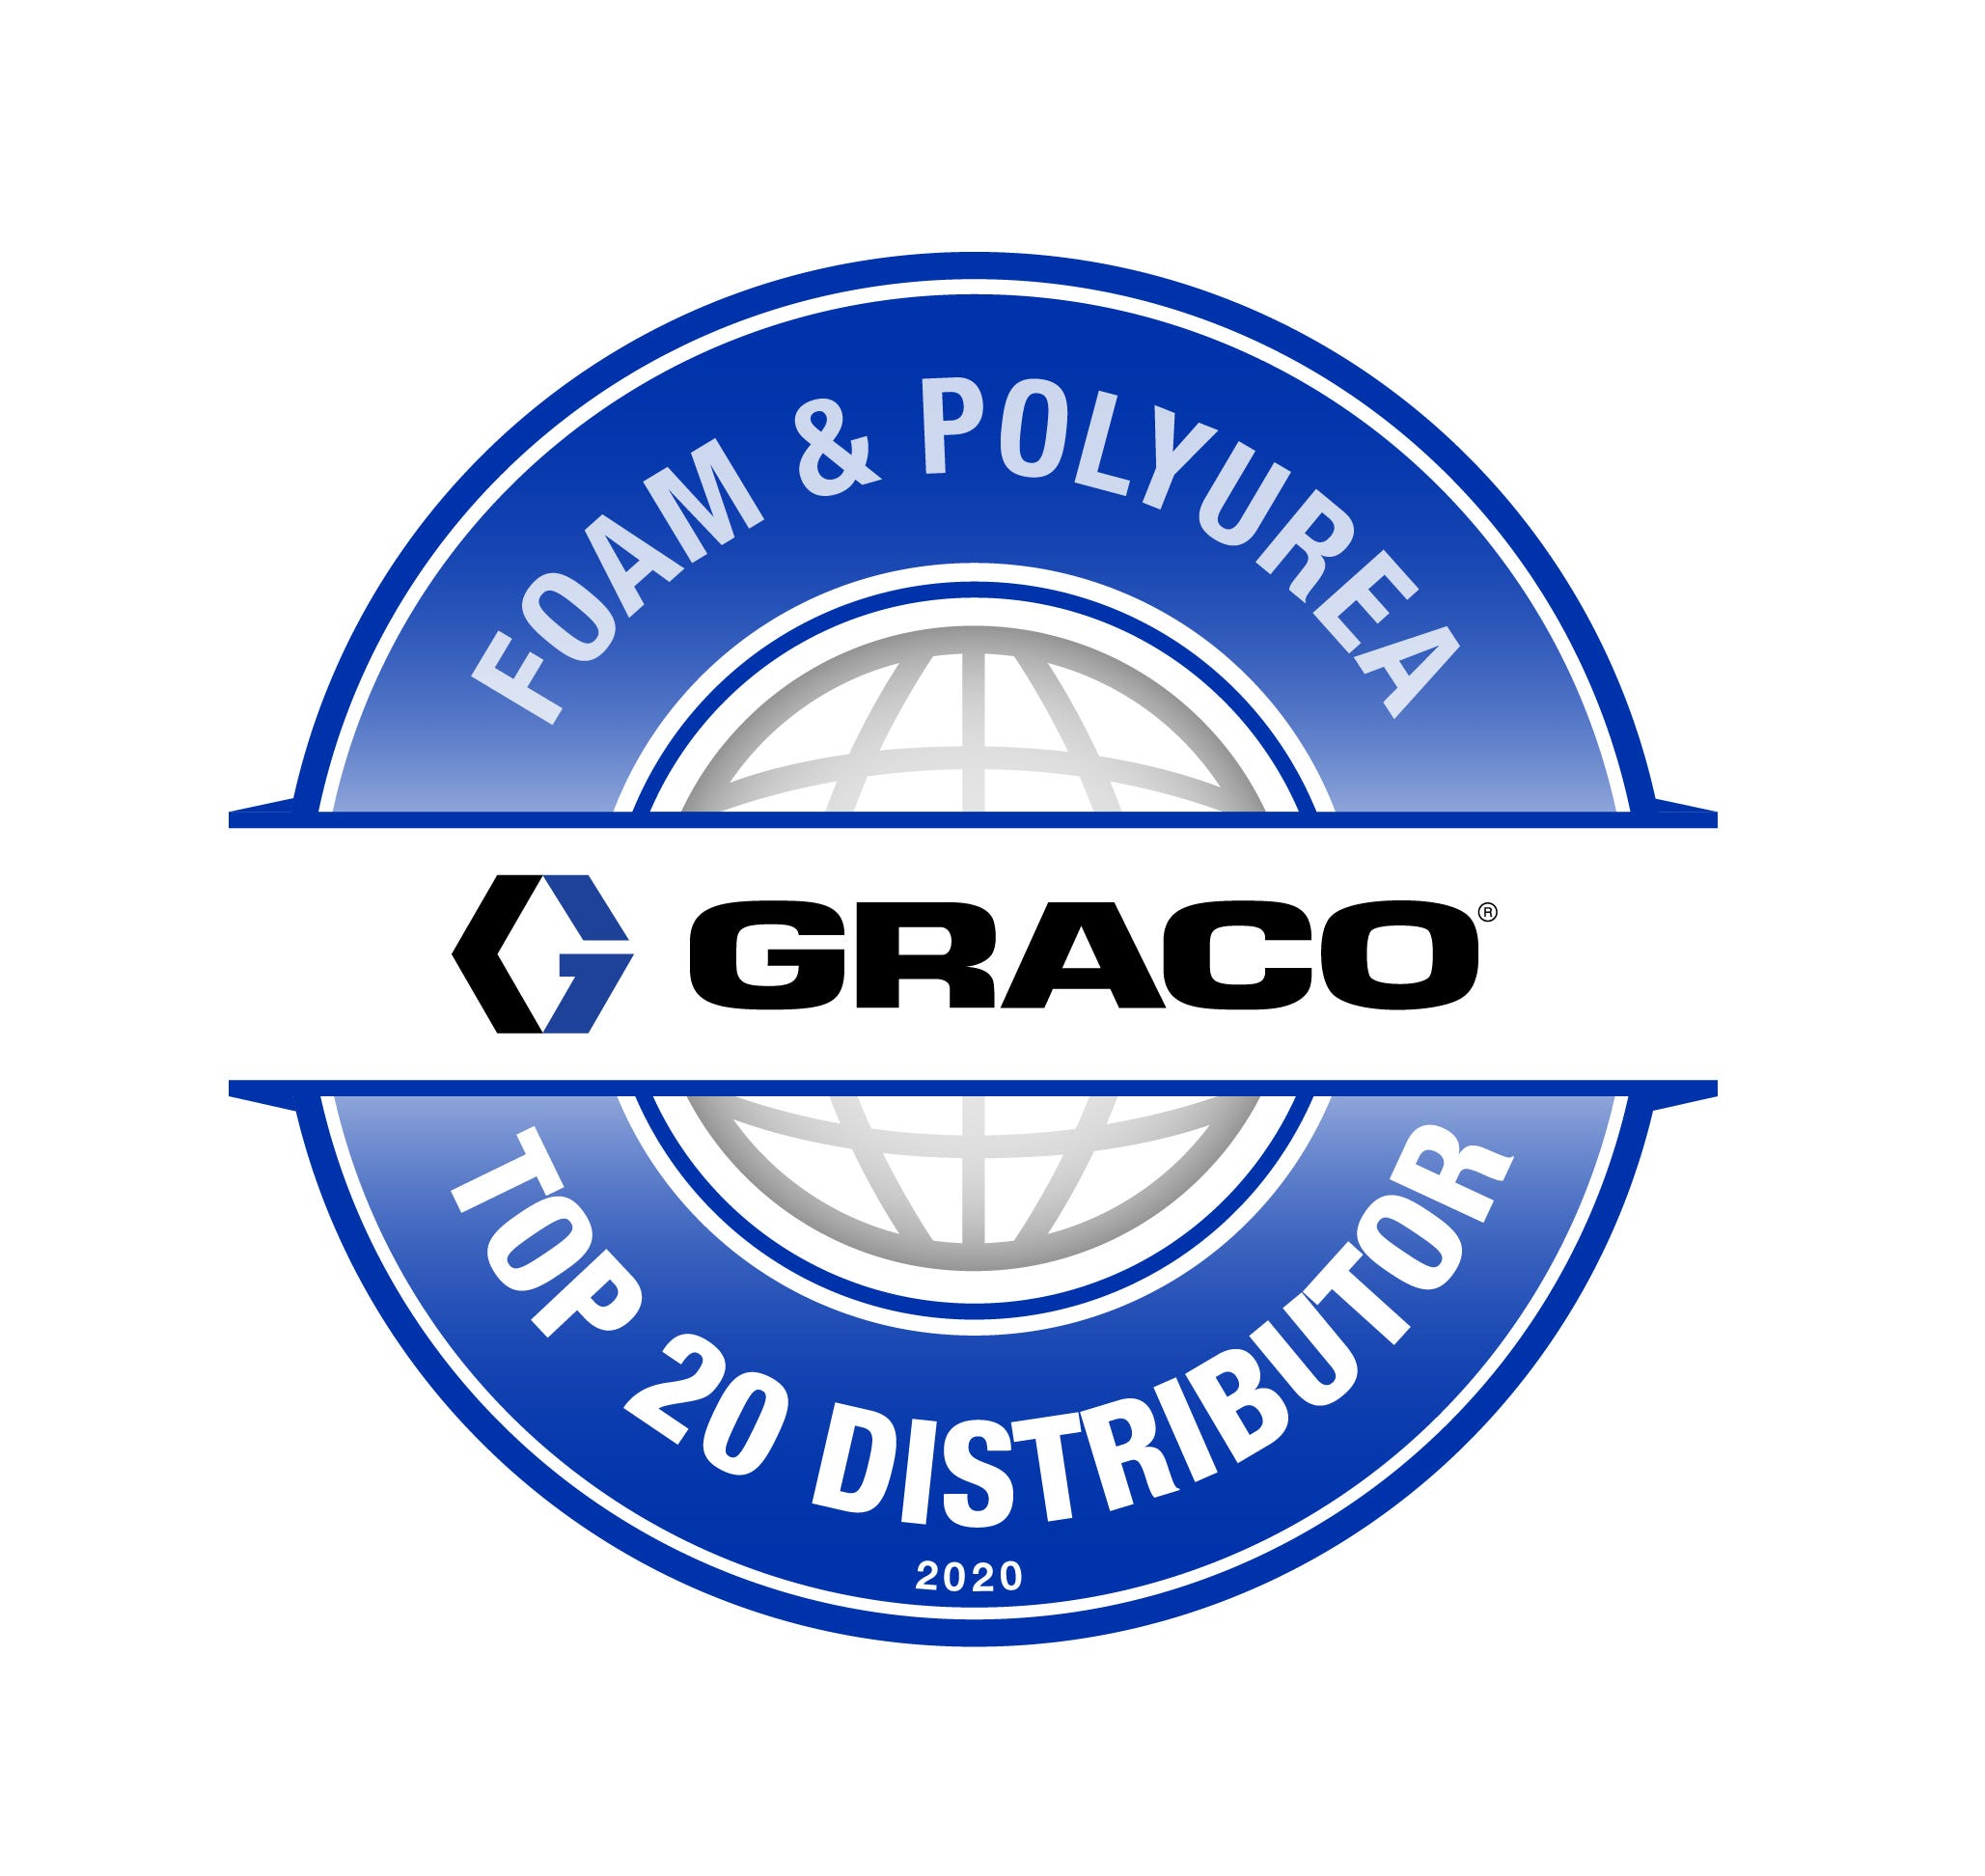 Graco Top 20 HPCF Distributor for 2020